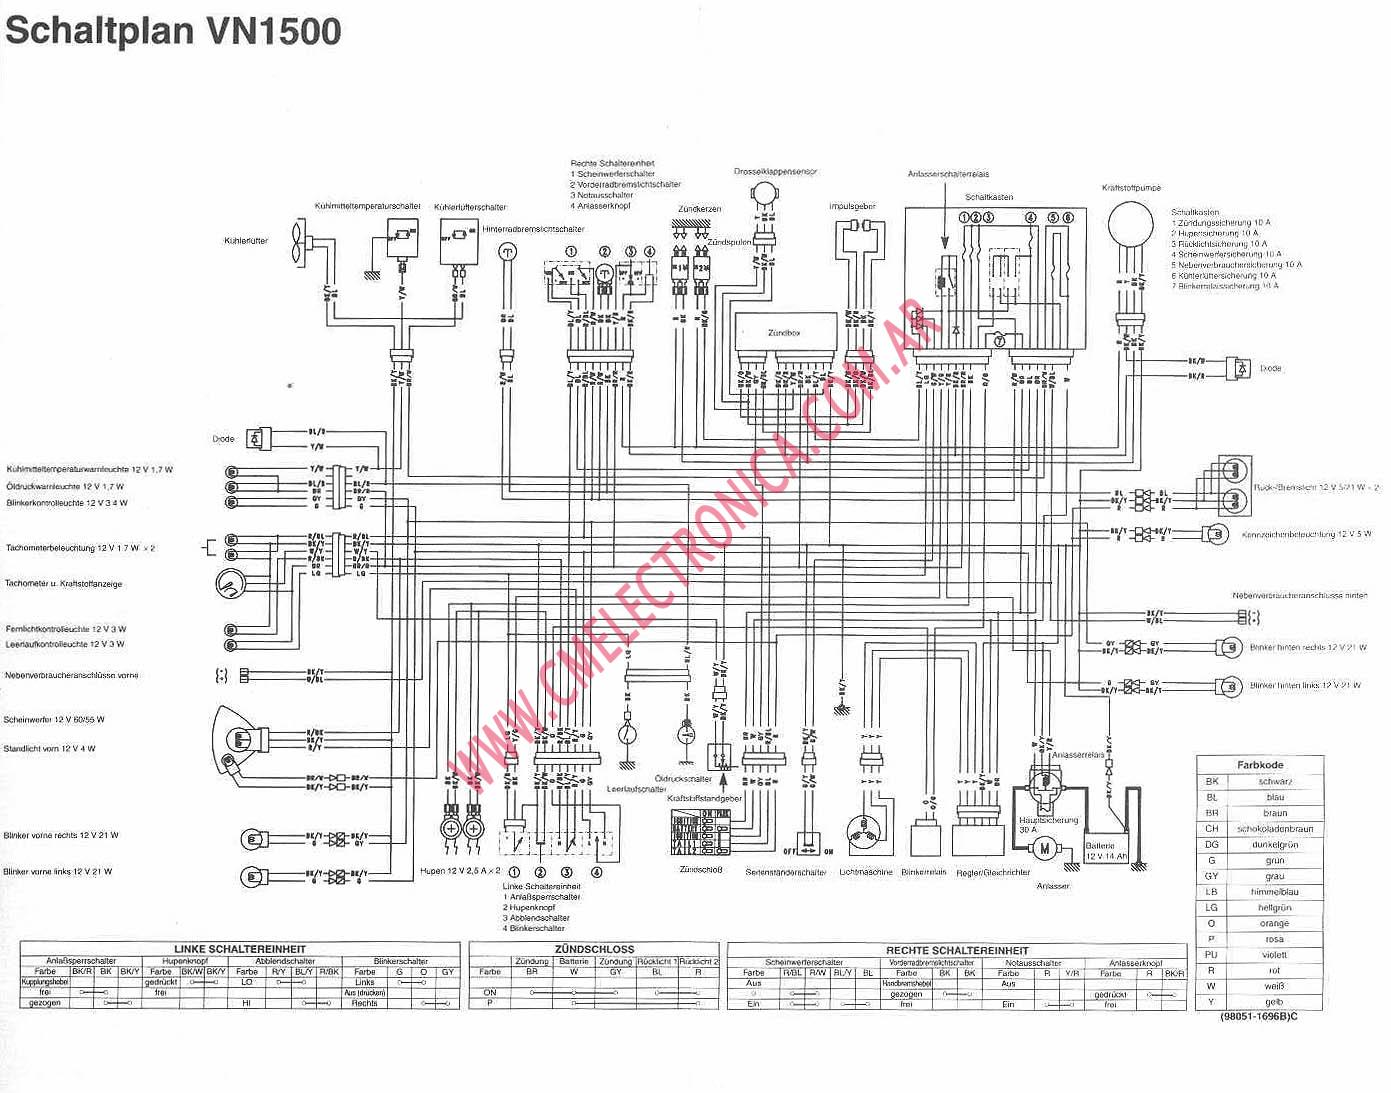 Wiring Diagram Zx12r Diagrams Kawasaki Zzr 1200 Example Electrical Free Engine 2000 Parts 2003 Zx 12r